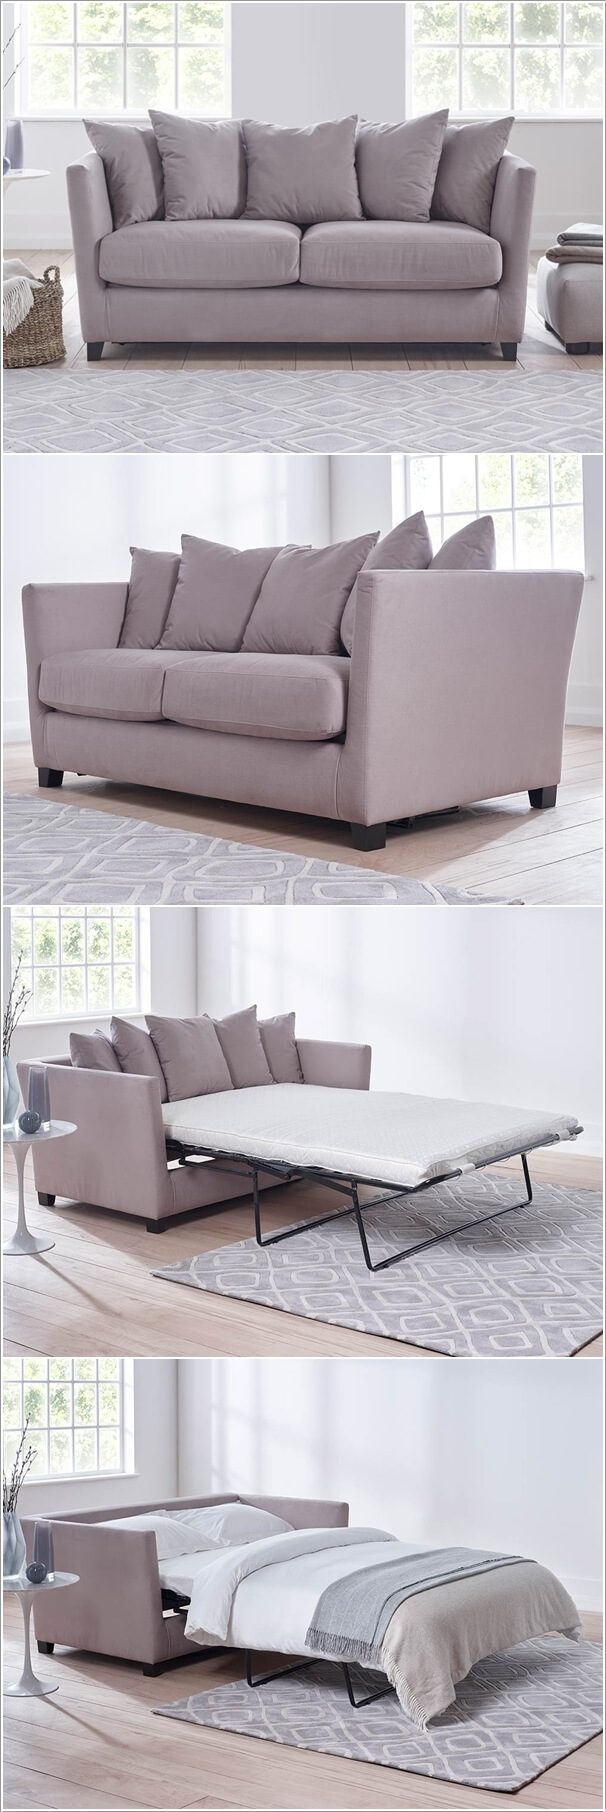 beds seater boom sofa ww bed